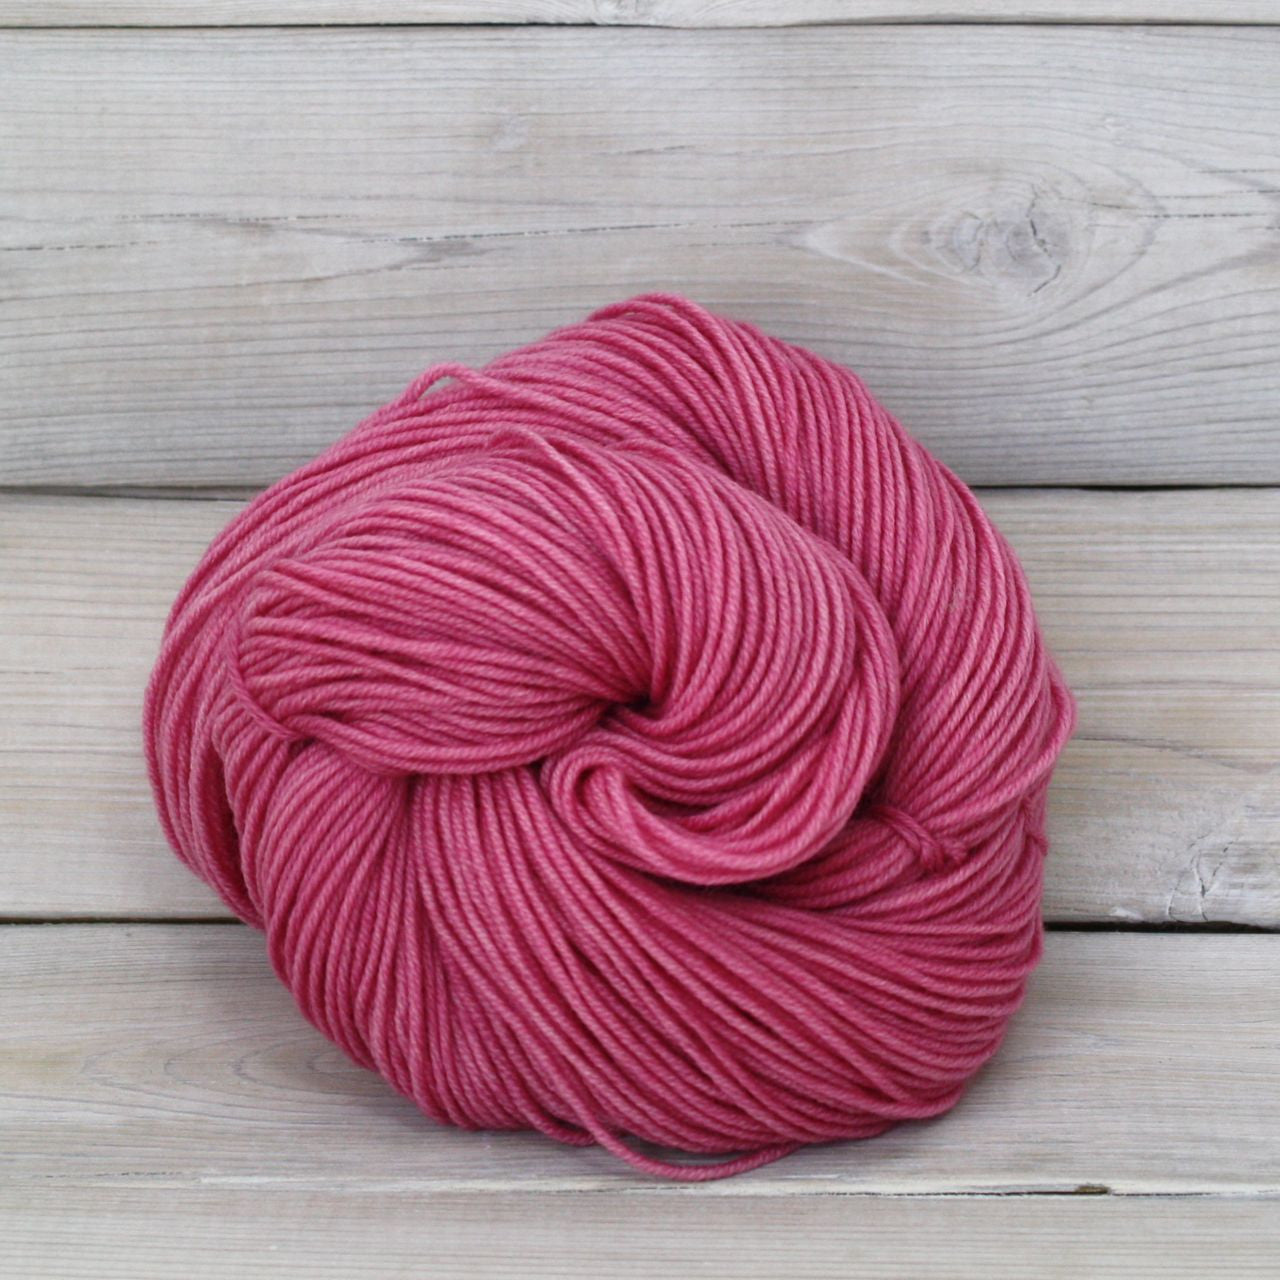 Colorway: Primrose | Dyed to Order Yarn